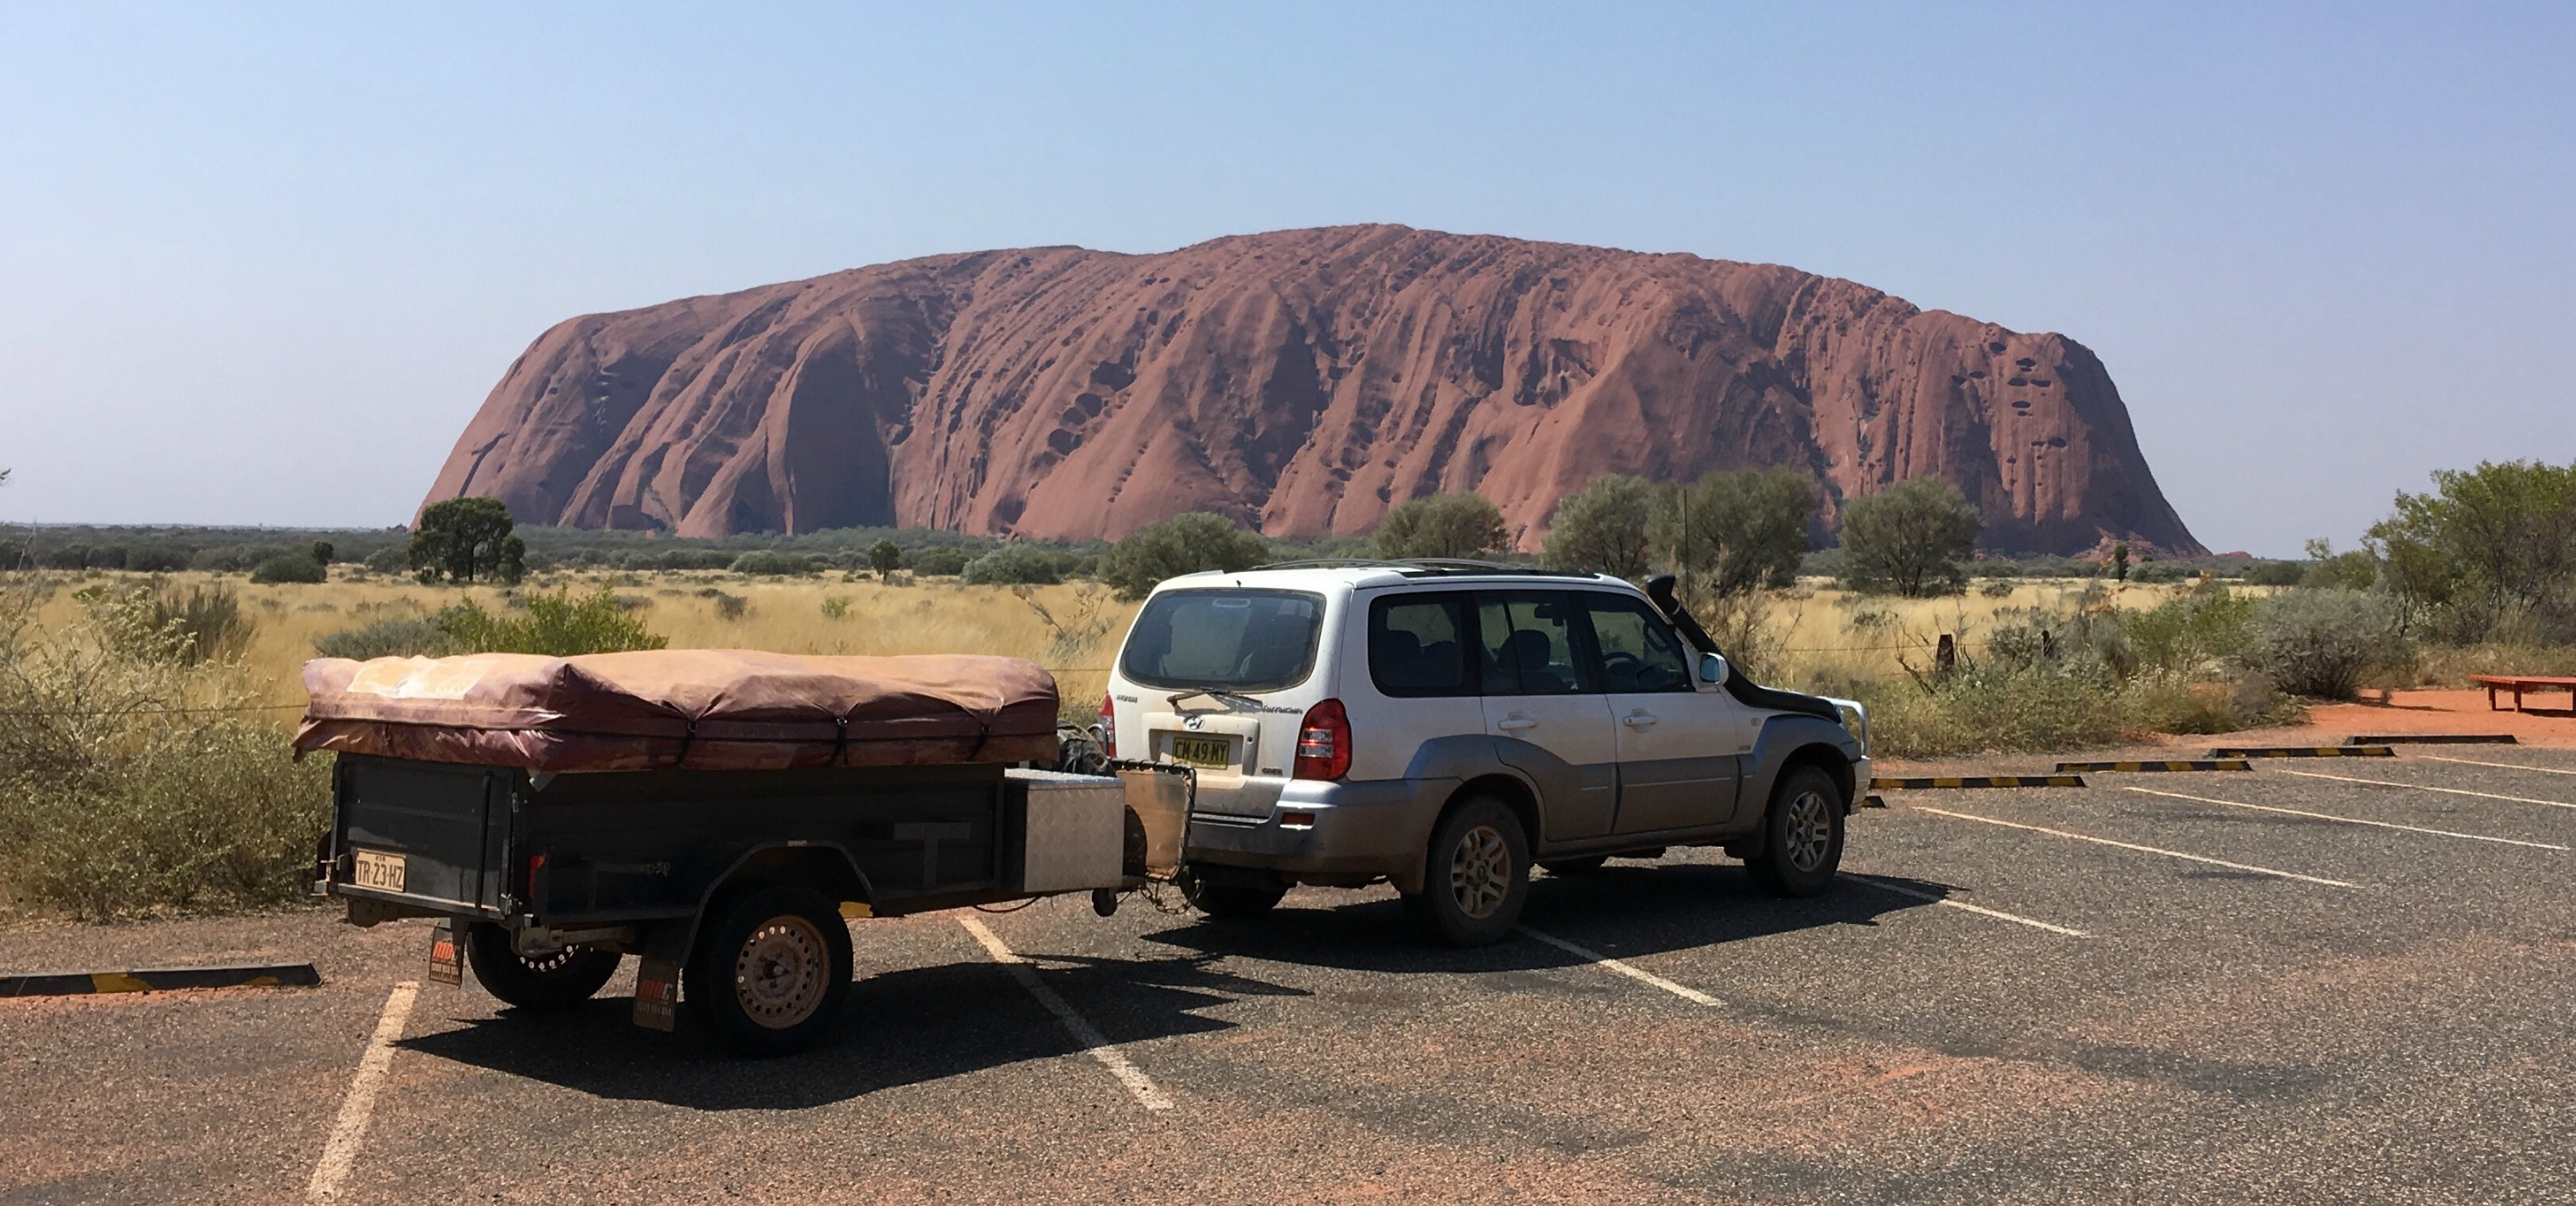 How to earn money while rving - our road trip around Australia - car and camper trailer at Uluru, Northern Territory, Australia